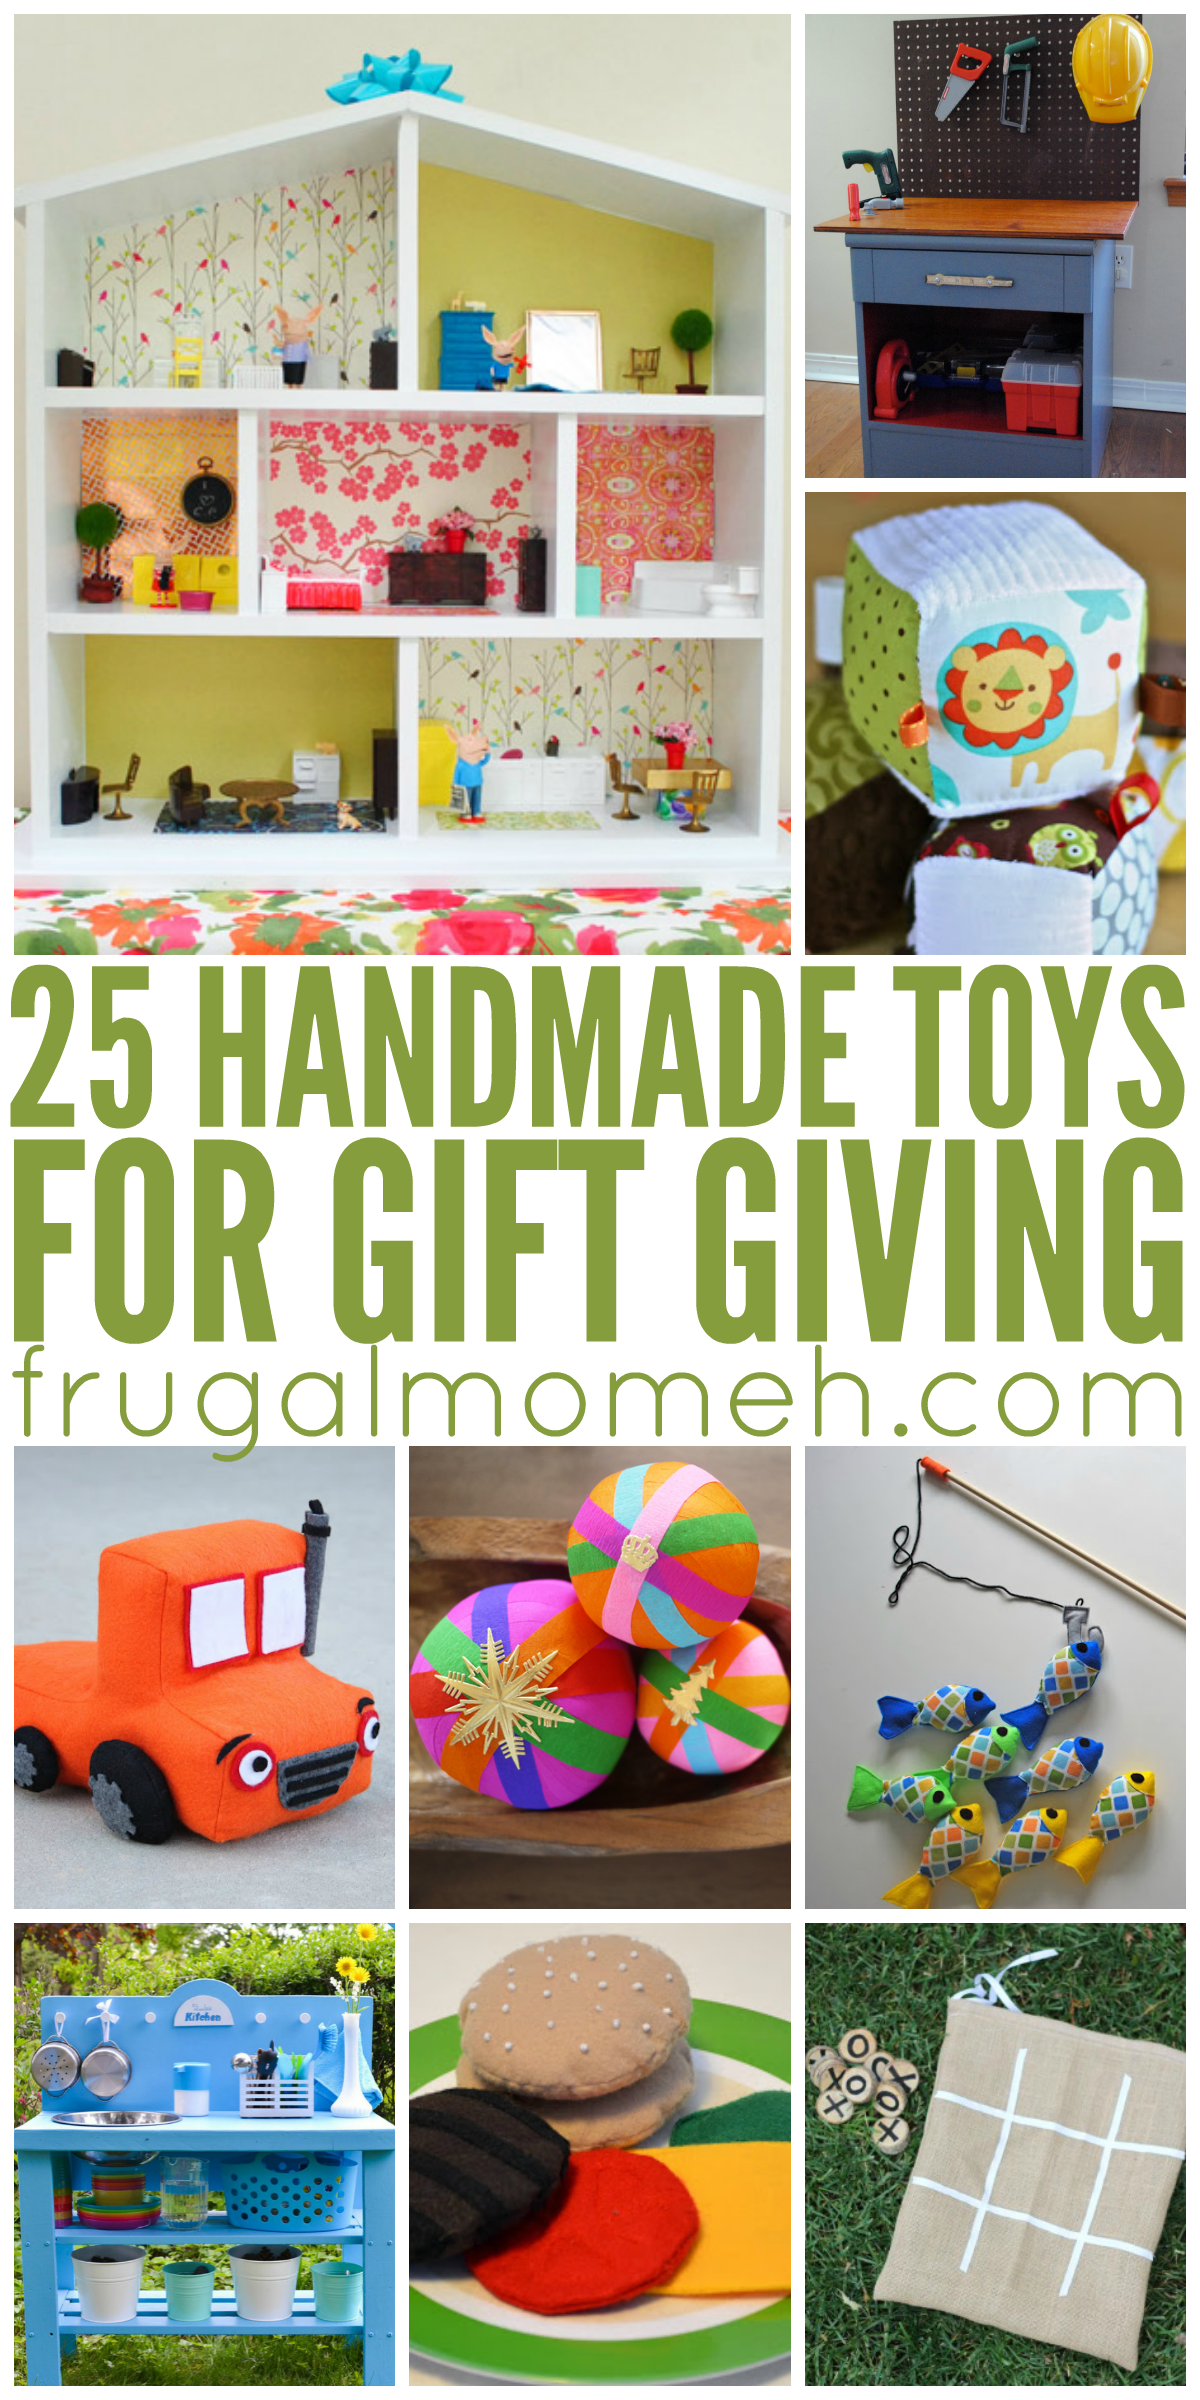 25 Handmade Toys for Gift Giving